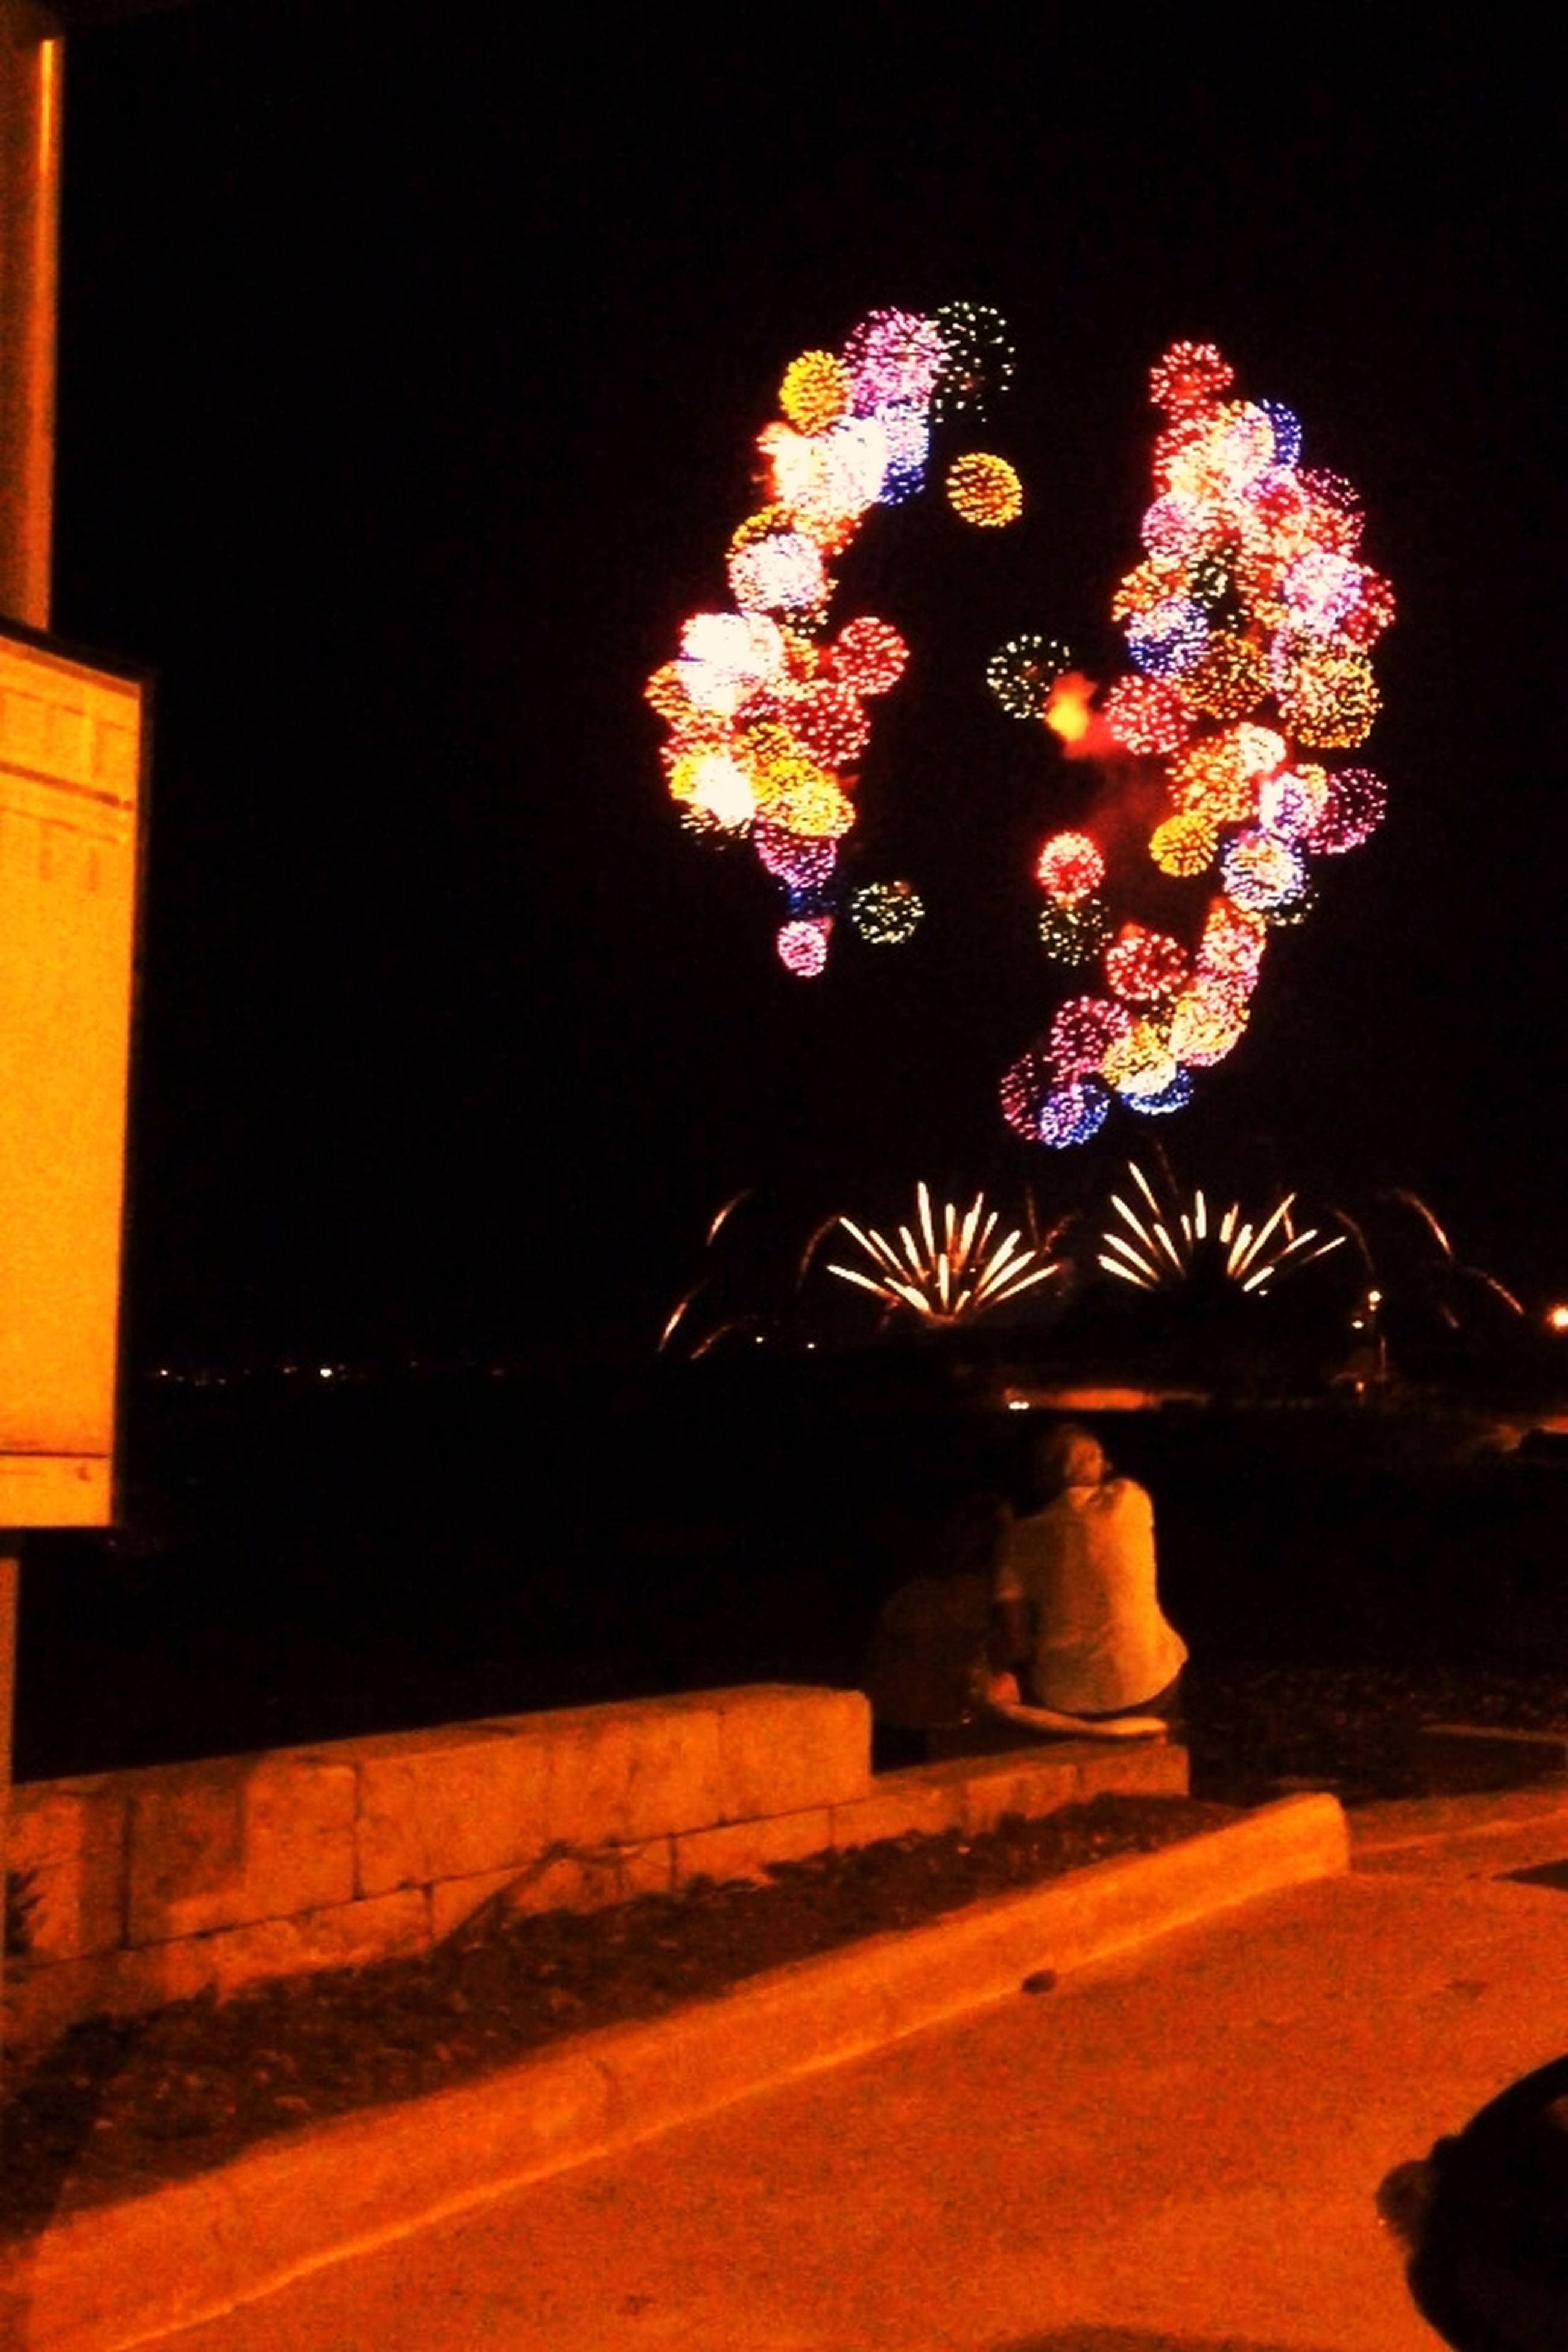 illuminated, night, celebration, glowing, decoration, creativity, art, art and craft, arts culture and entertainment, lighting equipment, long exposure, firework display, light - natural phenomenon, tradition, low angle view, exploding, motion, christmas, multi colored, firework - man made object